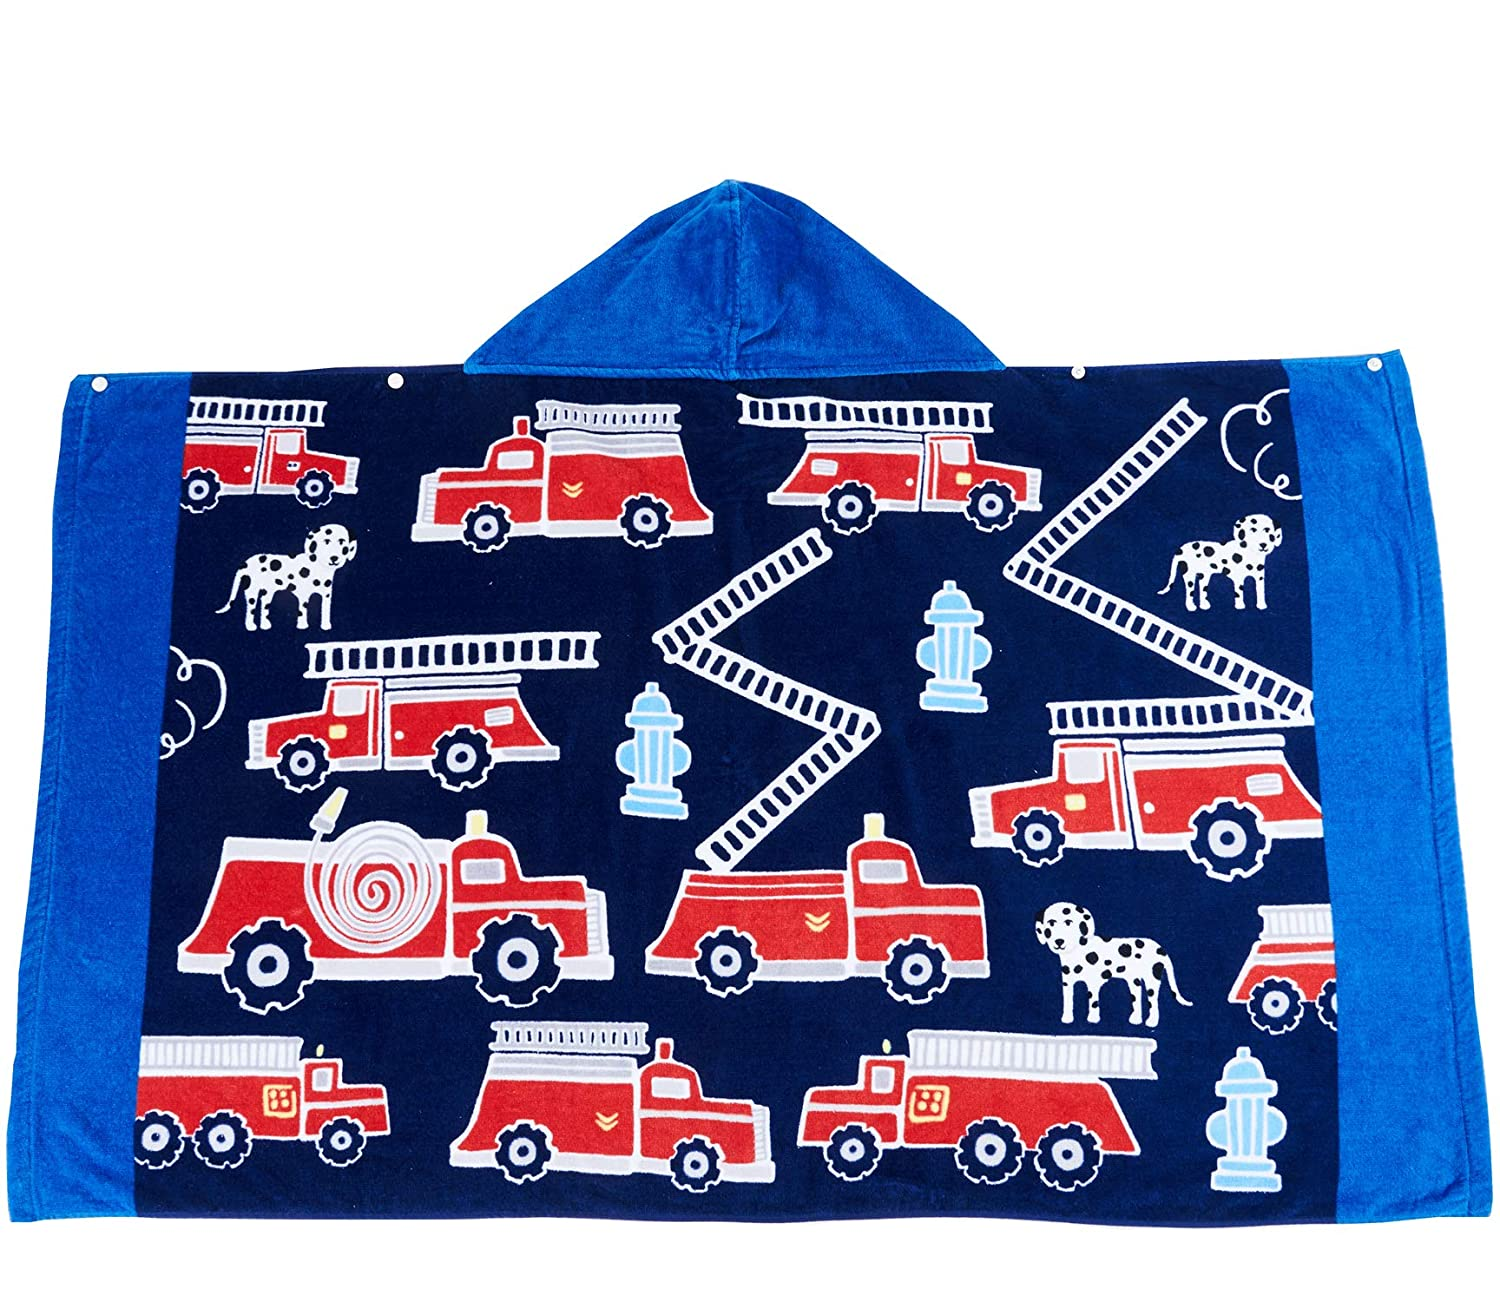 Wowelife Fire Truck Hooded Bath Towel Upgraded for Bath, Pool and Beach, 100% Cotton 30 x 50 inch Extended Length for Boys and Girls, Fits 4-12 Years Old(Fire Engine)